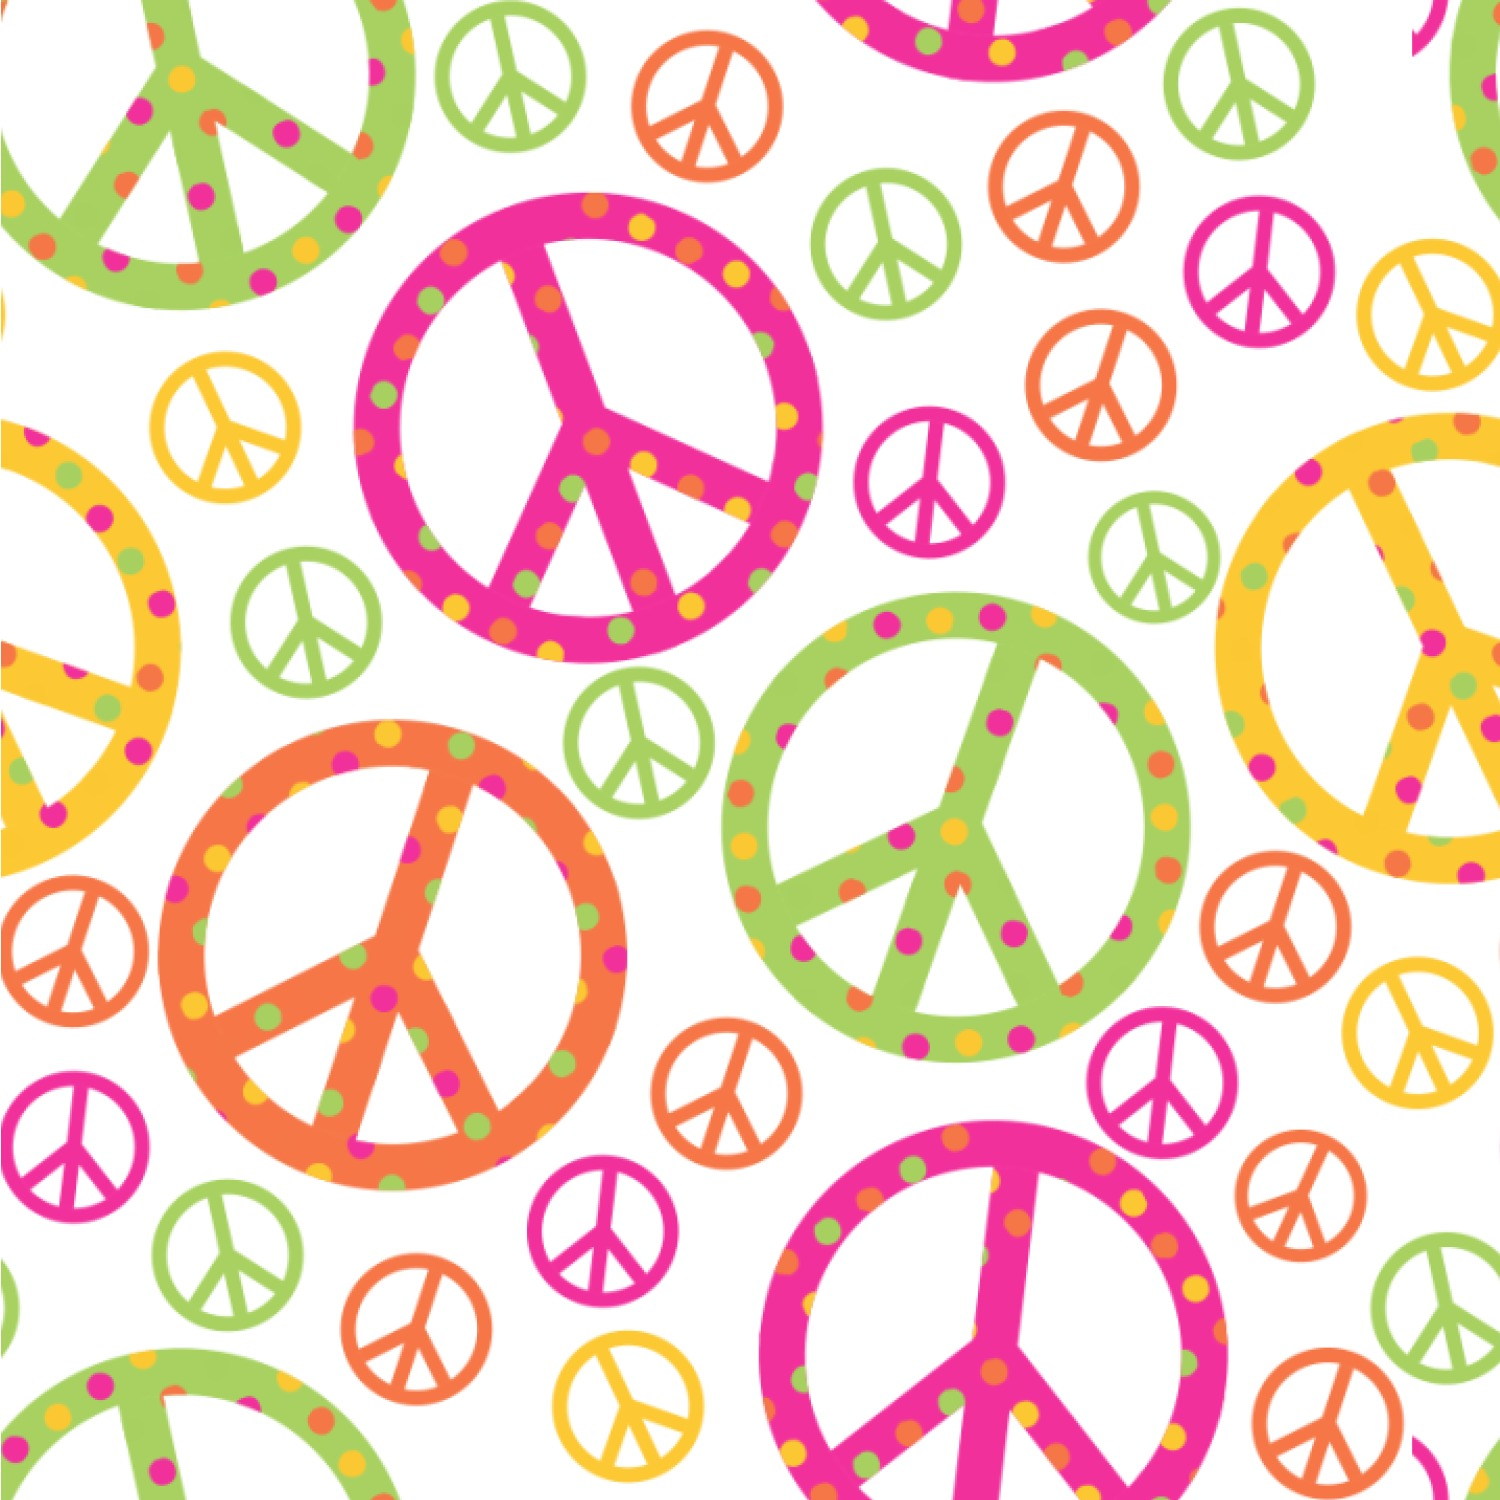 Wallpaper Of Peace: Peace Sign Wallpaper & Surface Covering